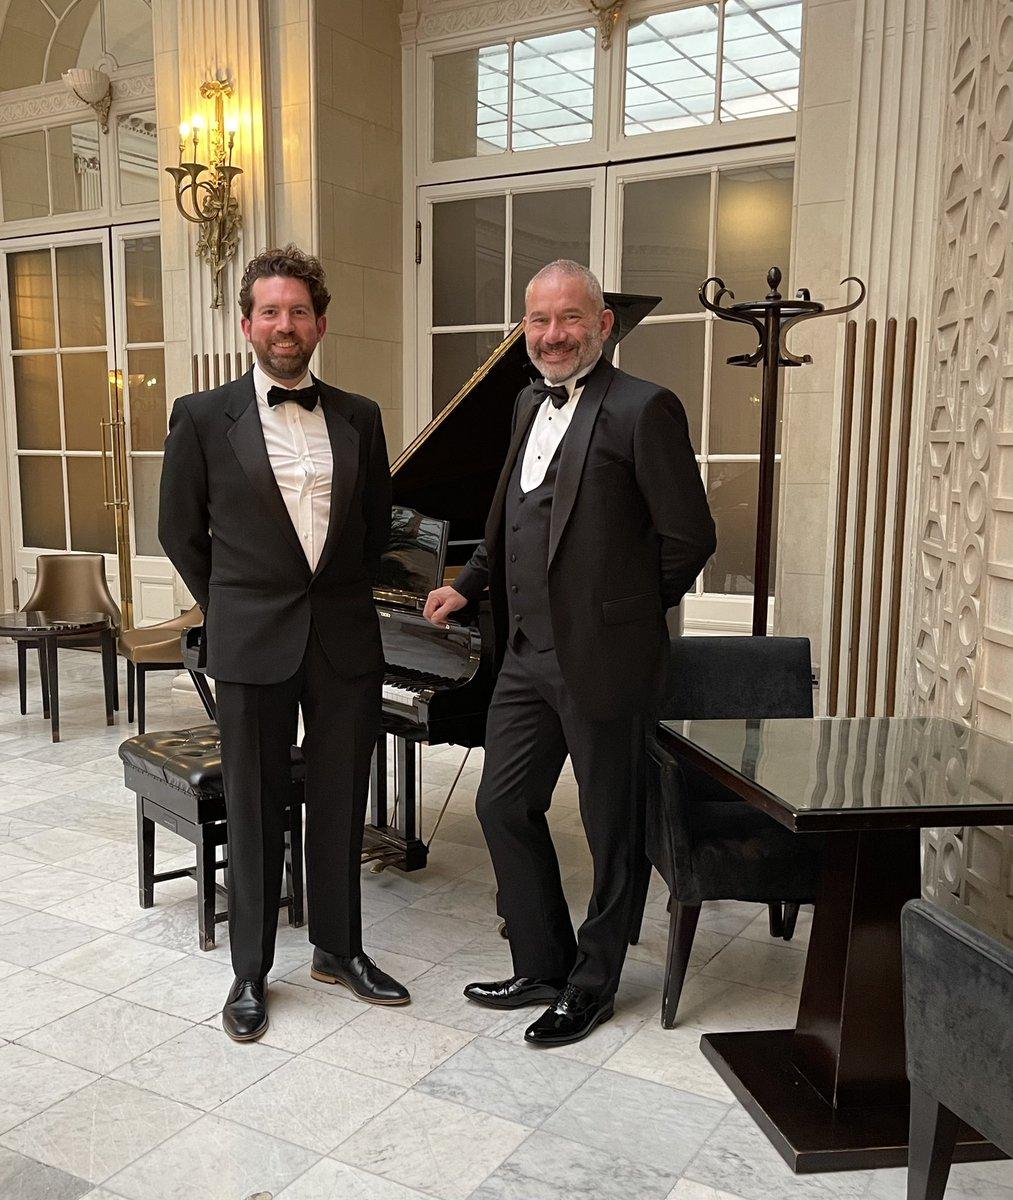 At the Waldorf Hilton London with Ben Roberts. @virtualworlds3D are finalists in two categories at the Retail Systems Awards. 1) Best Use of Augmented Reality or Virtual Reality. 2) In-store Technology of the Year. @RetailSAwards